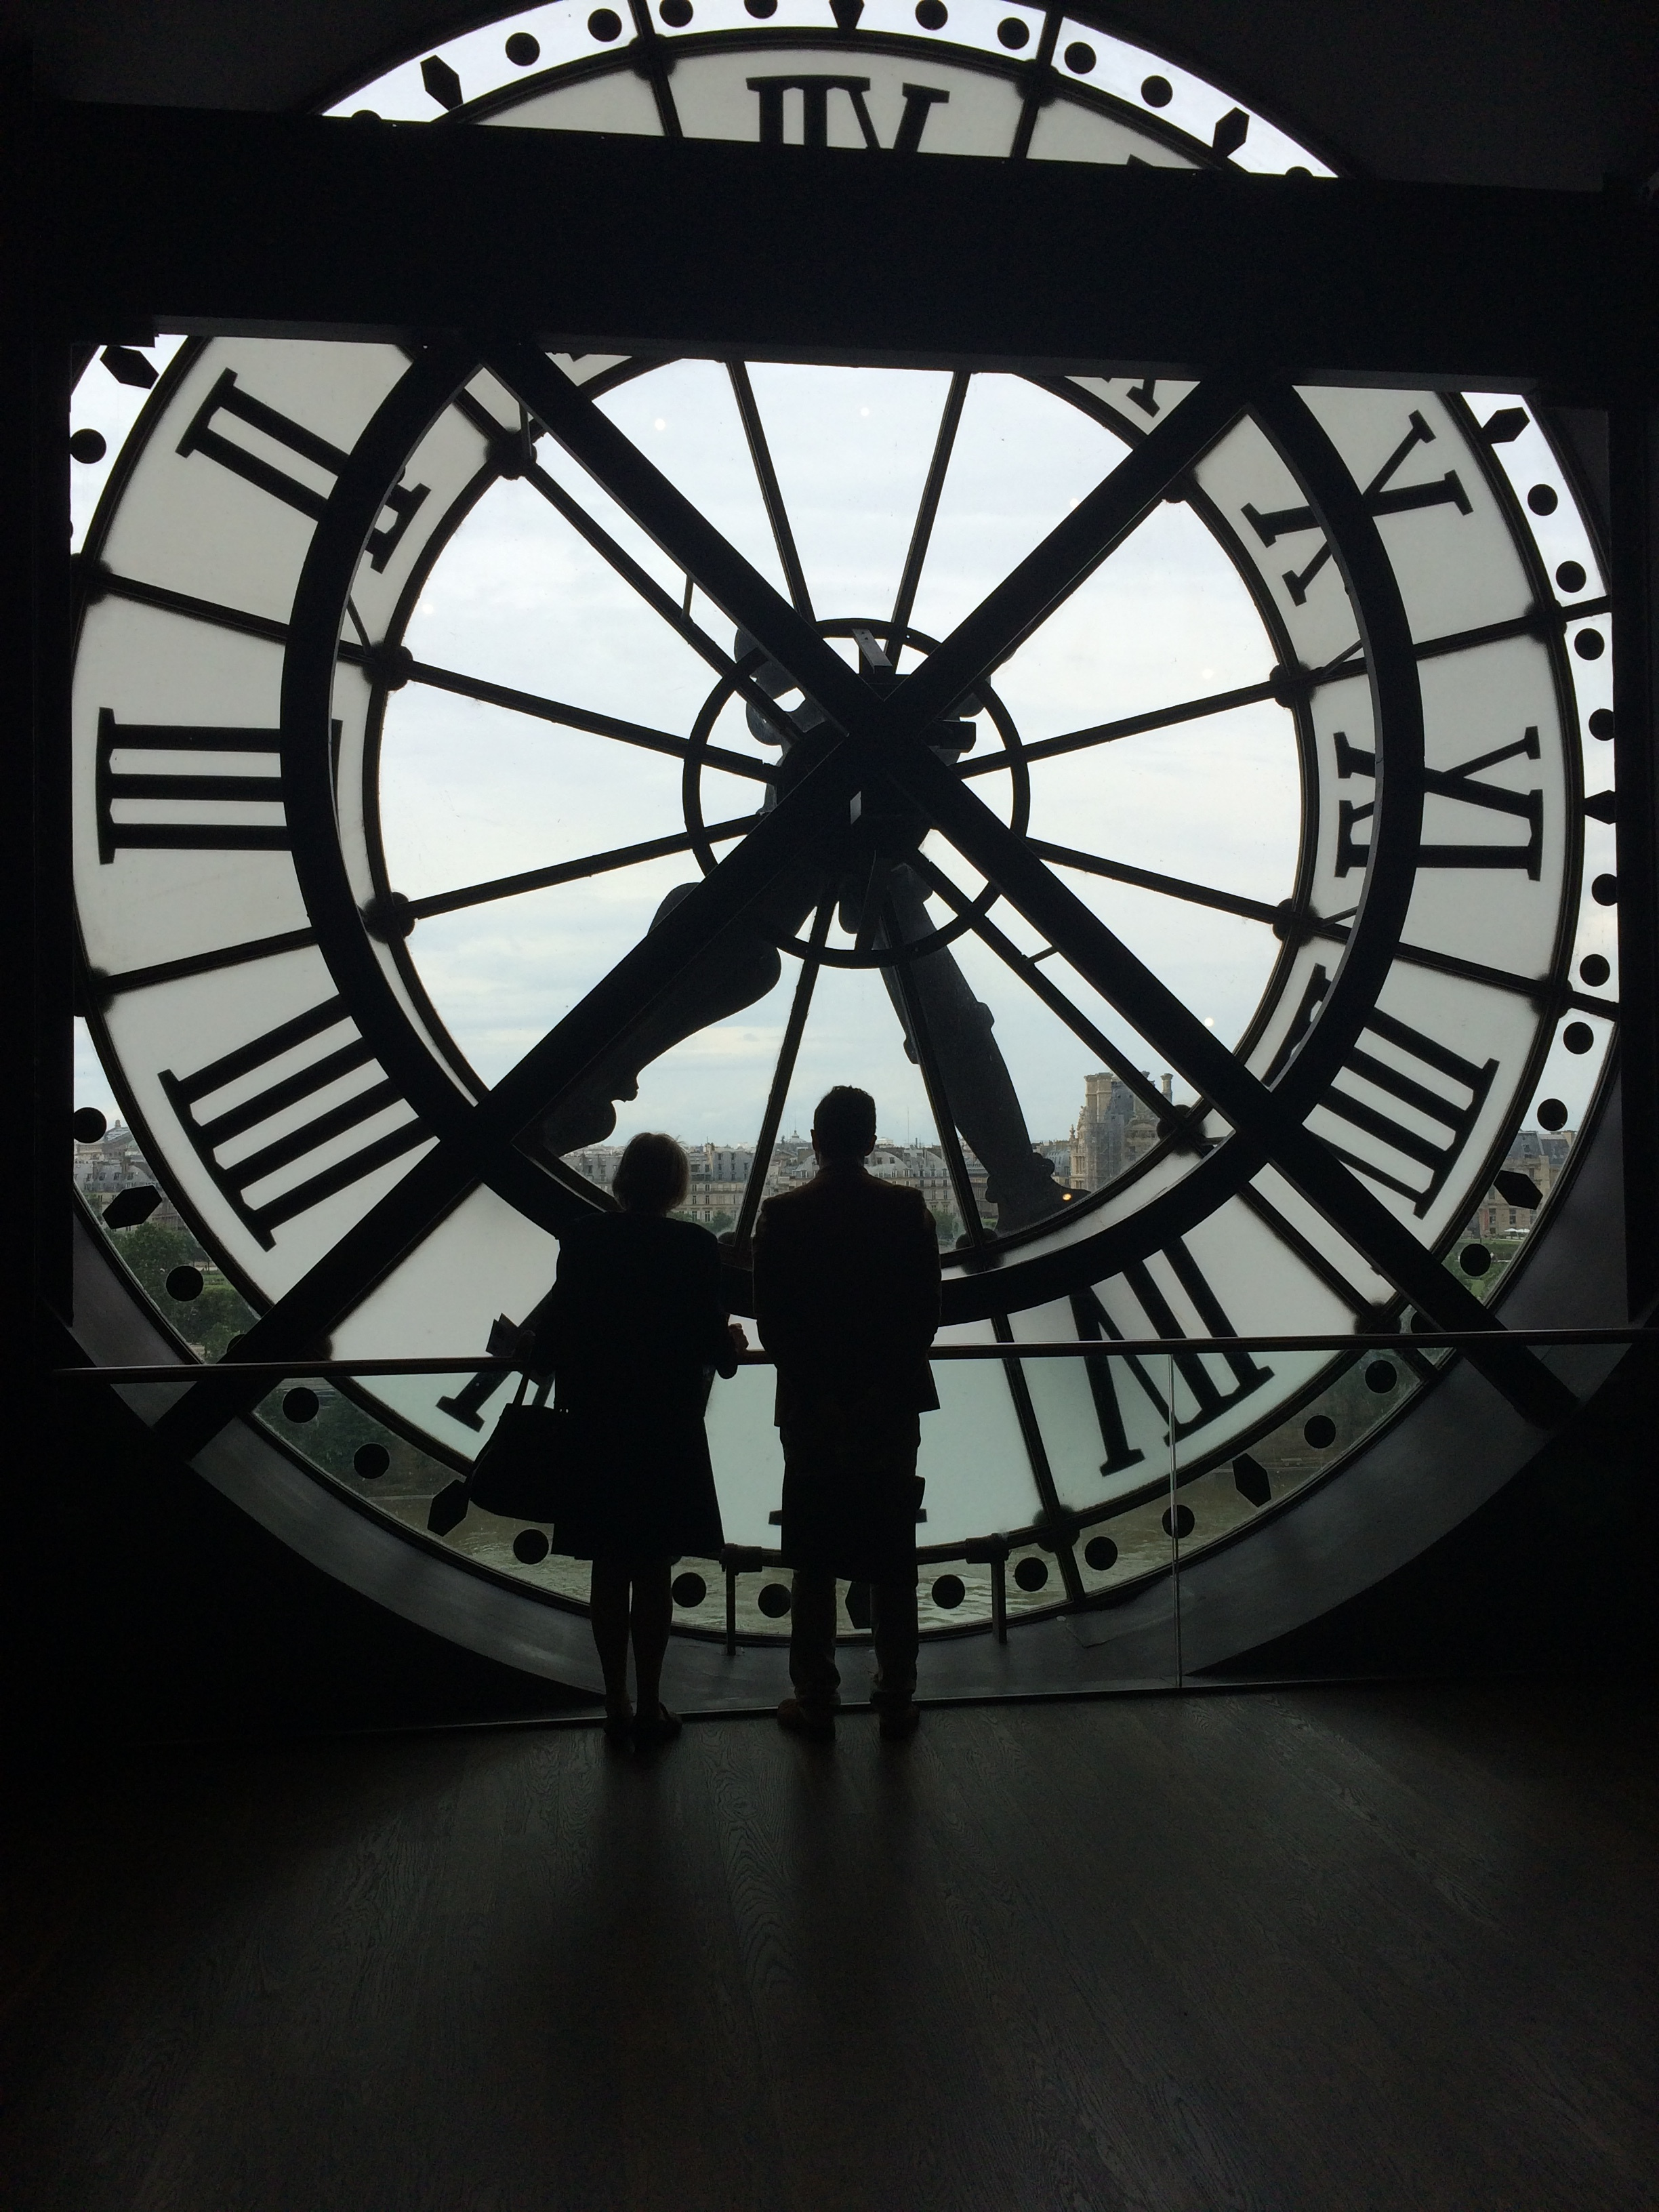 Large clock looking out over the Parisian Landscape.